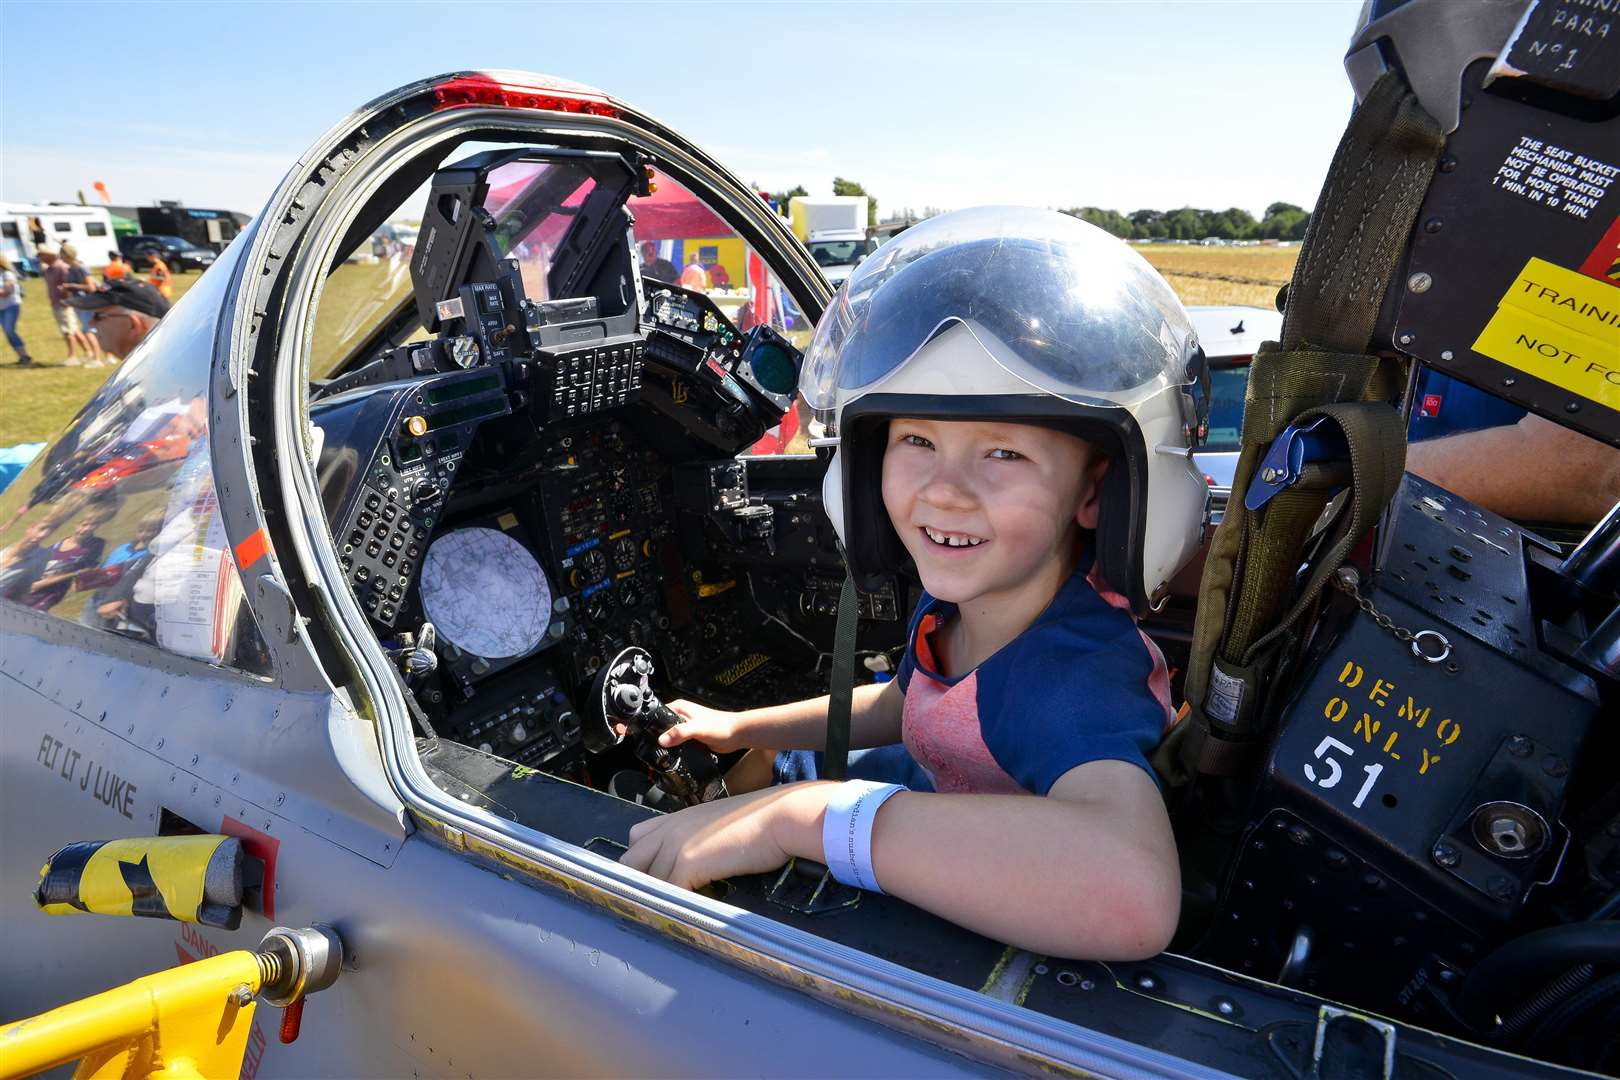 Old Buckenham, Norfolk. 28 July 2018 ..Old Buckenham Airshow, Jack Taylor in a cockpit of a Jaguar jet plane of the Sprit of Coltishall Association...Picture by Mark Bullimore Photography. (3322368)